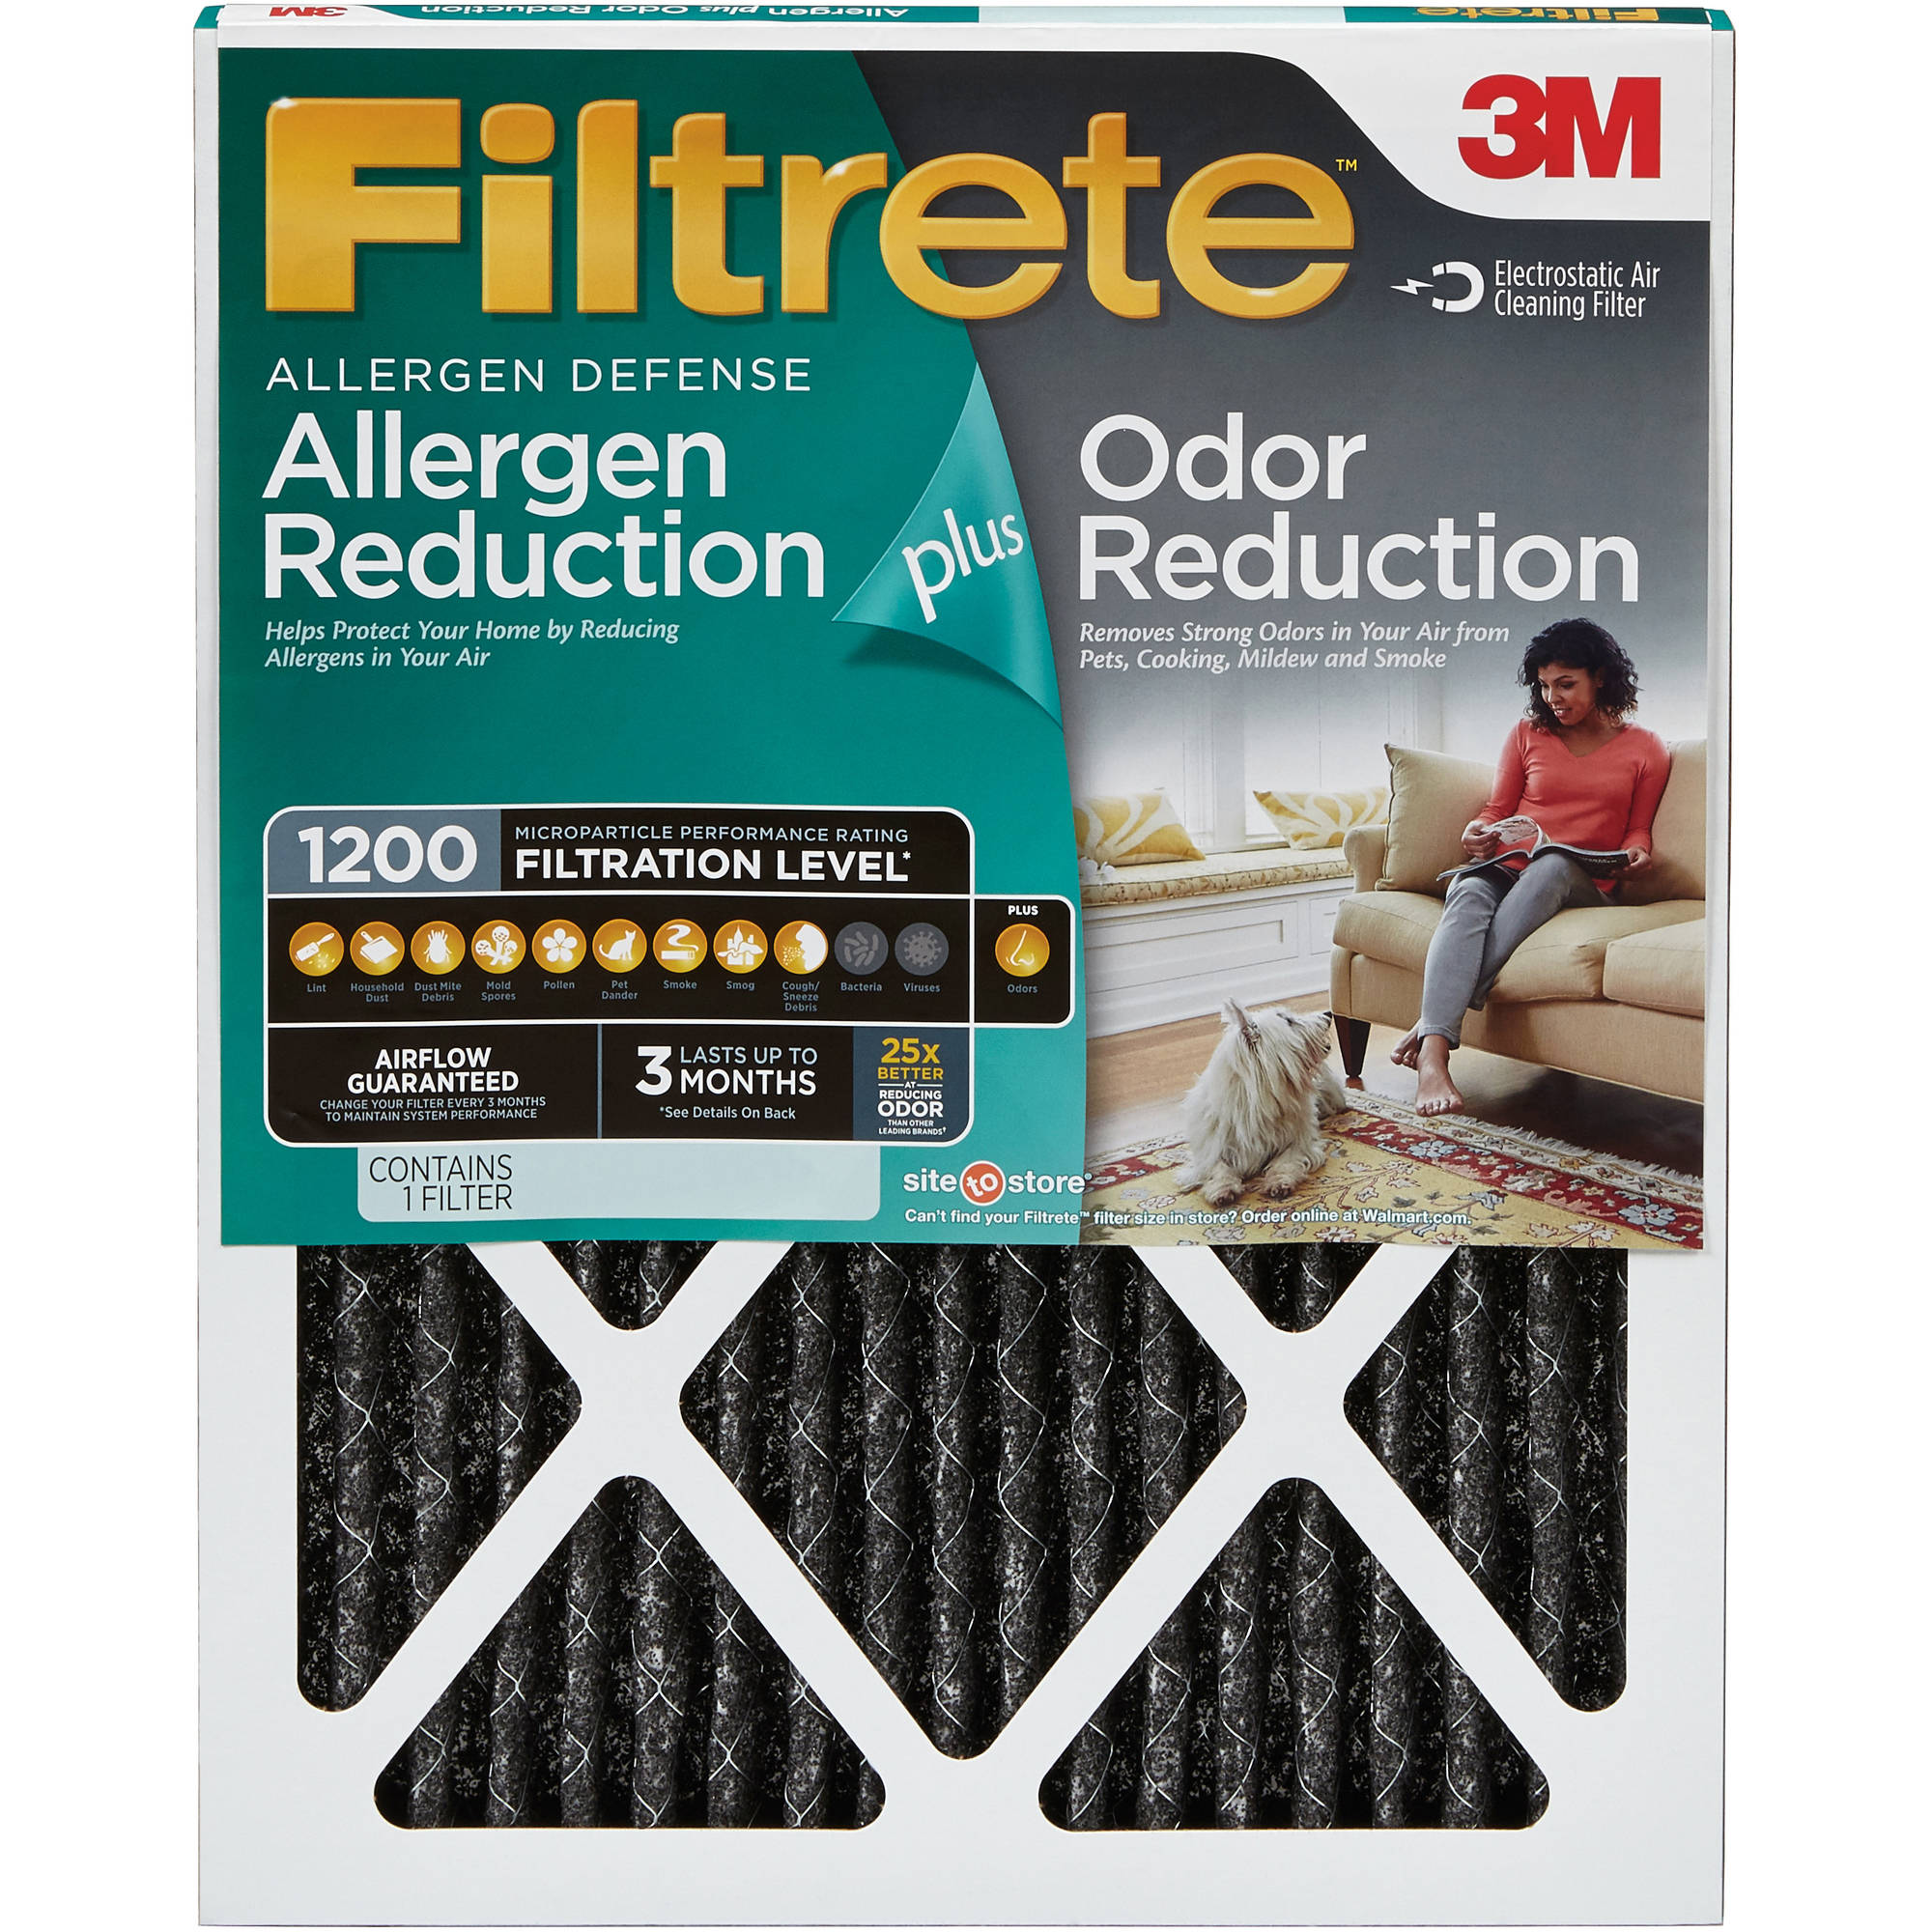 Filtrete Allergen Plus Odor Reduction HVAC Furnace Air Filter, 1200 MPR, 12 x 30 x 1, 1 Filter